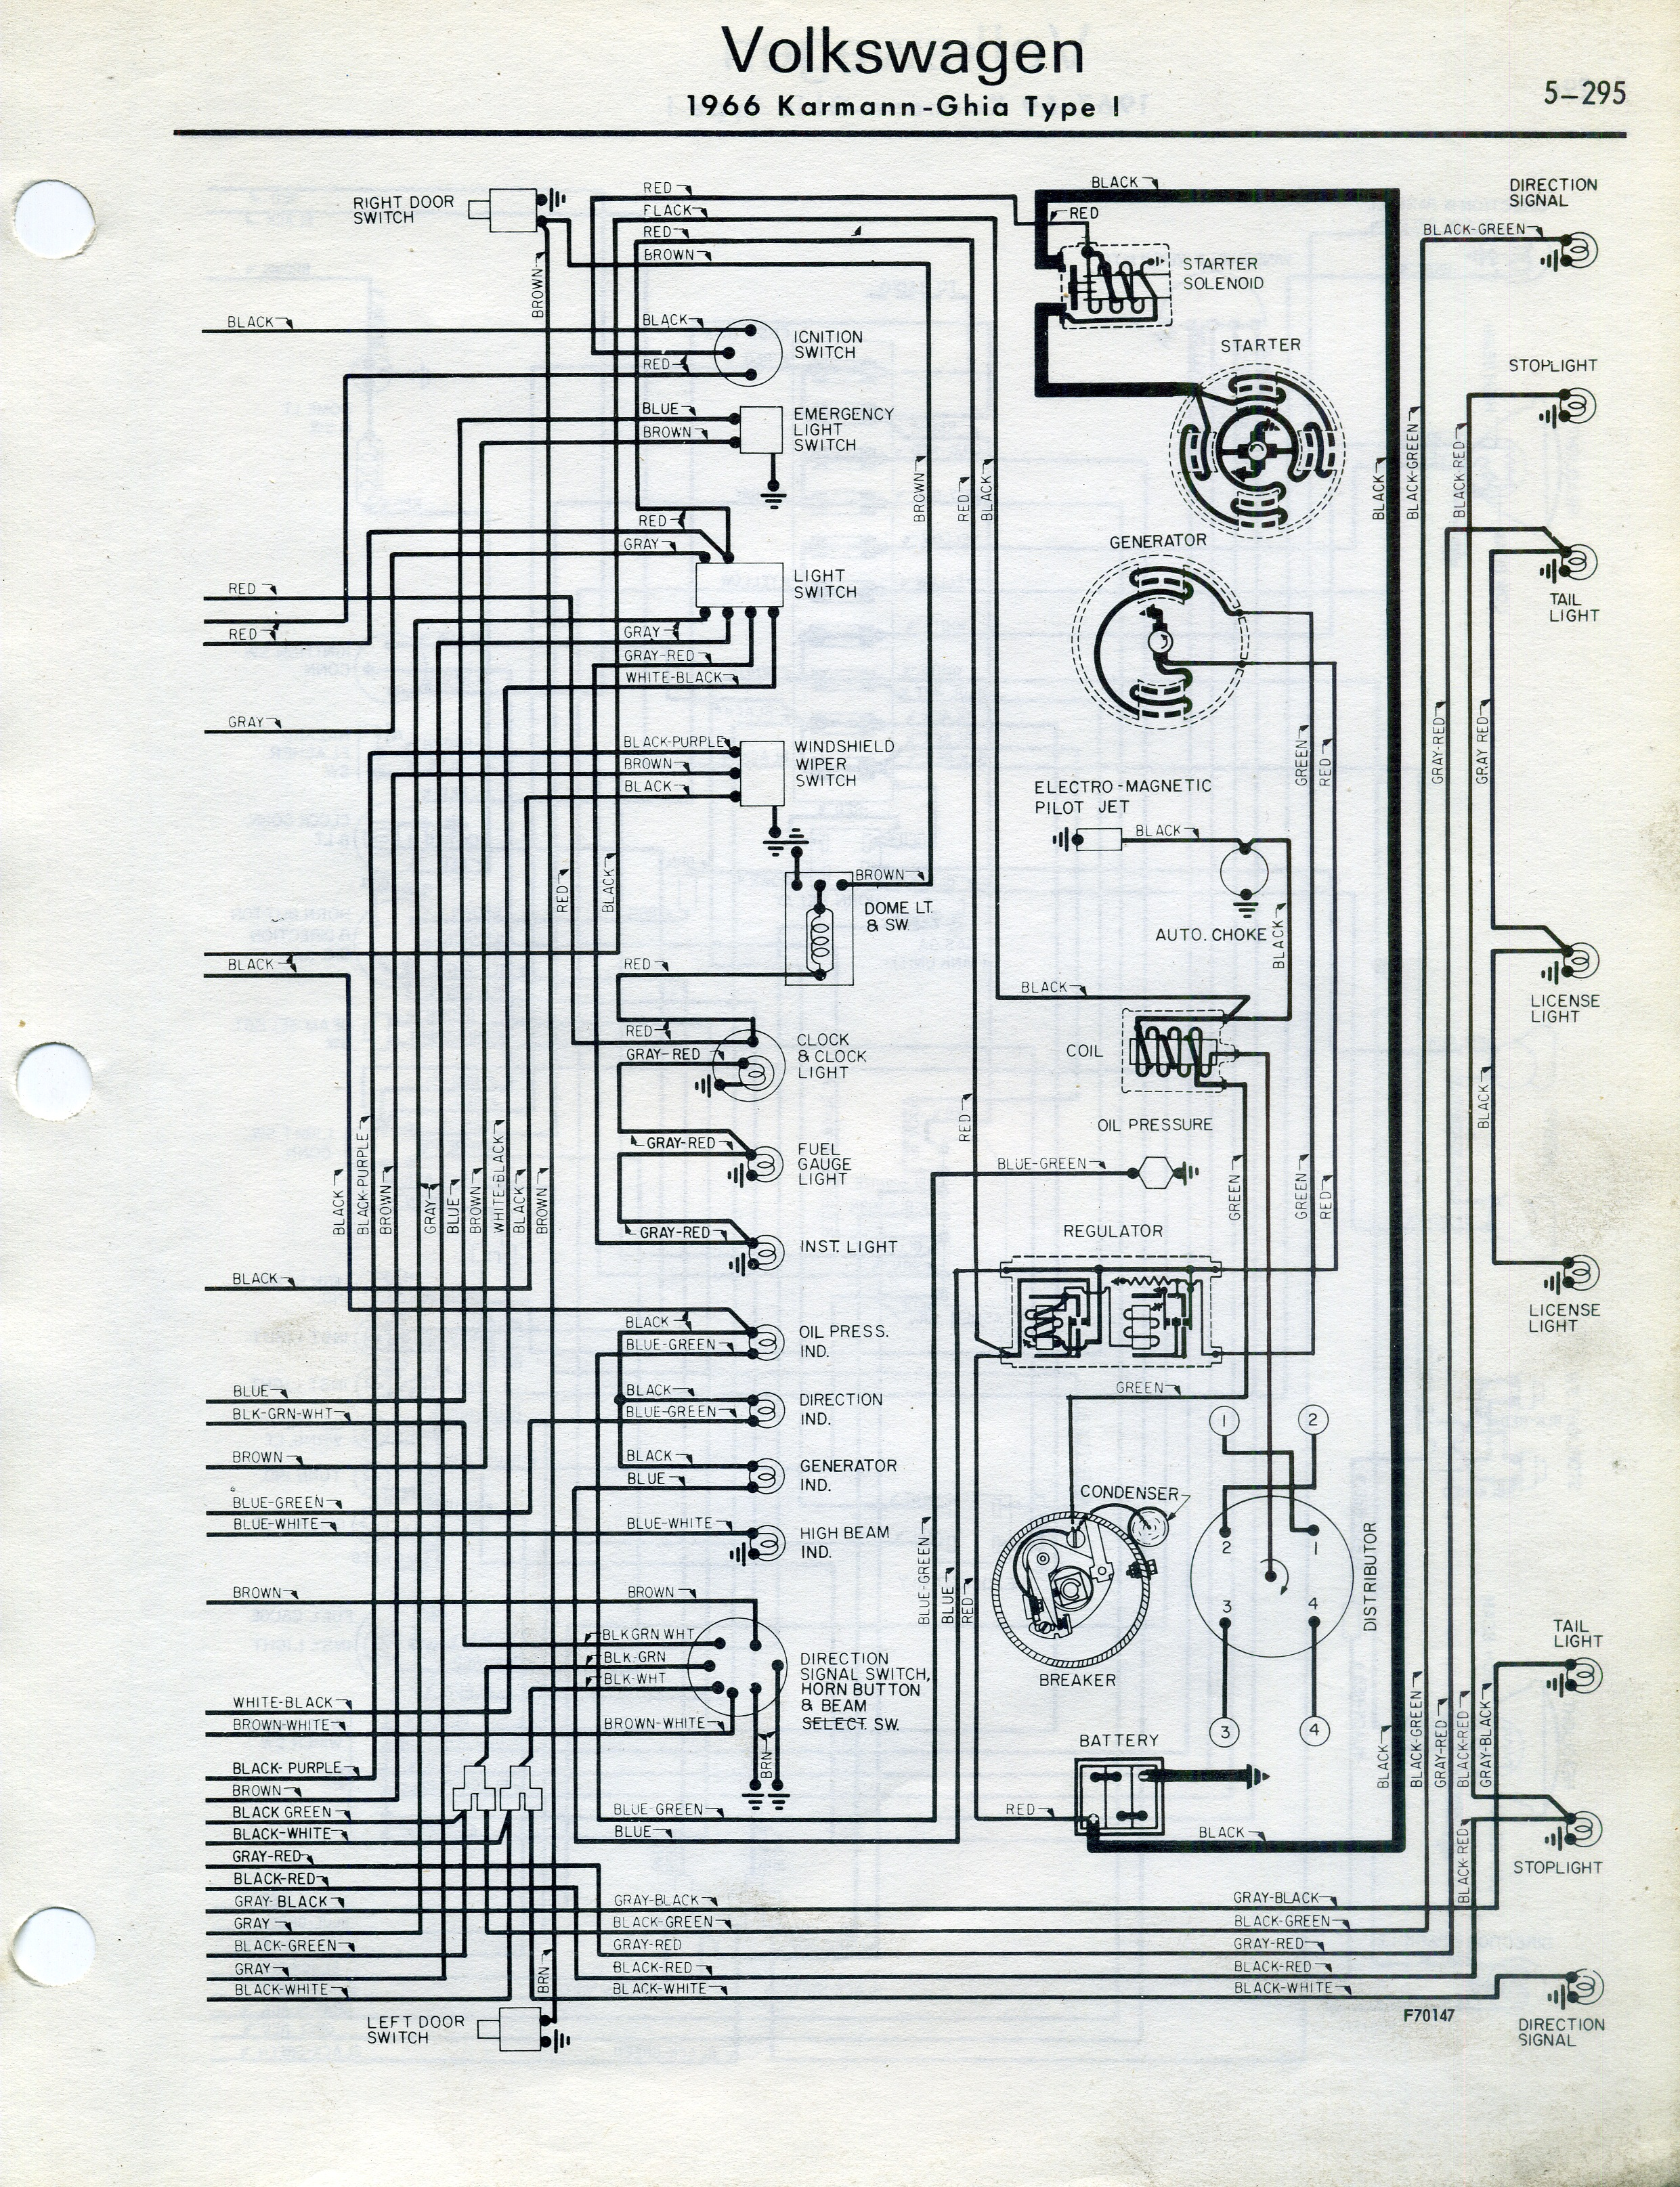 72 karmann ghia wiring diagram thesamba com    karmann       ghia       wiring    diagrams  thesamba com    karmann       ghia       wiring    diagrams